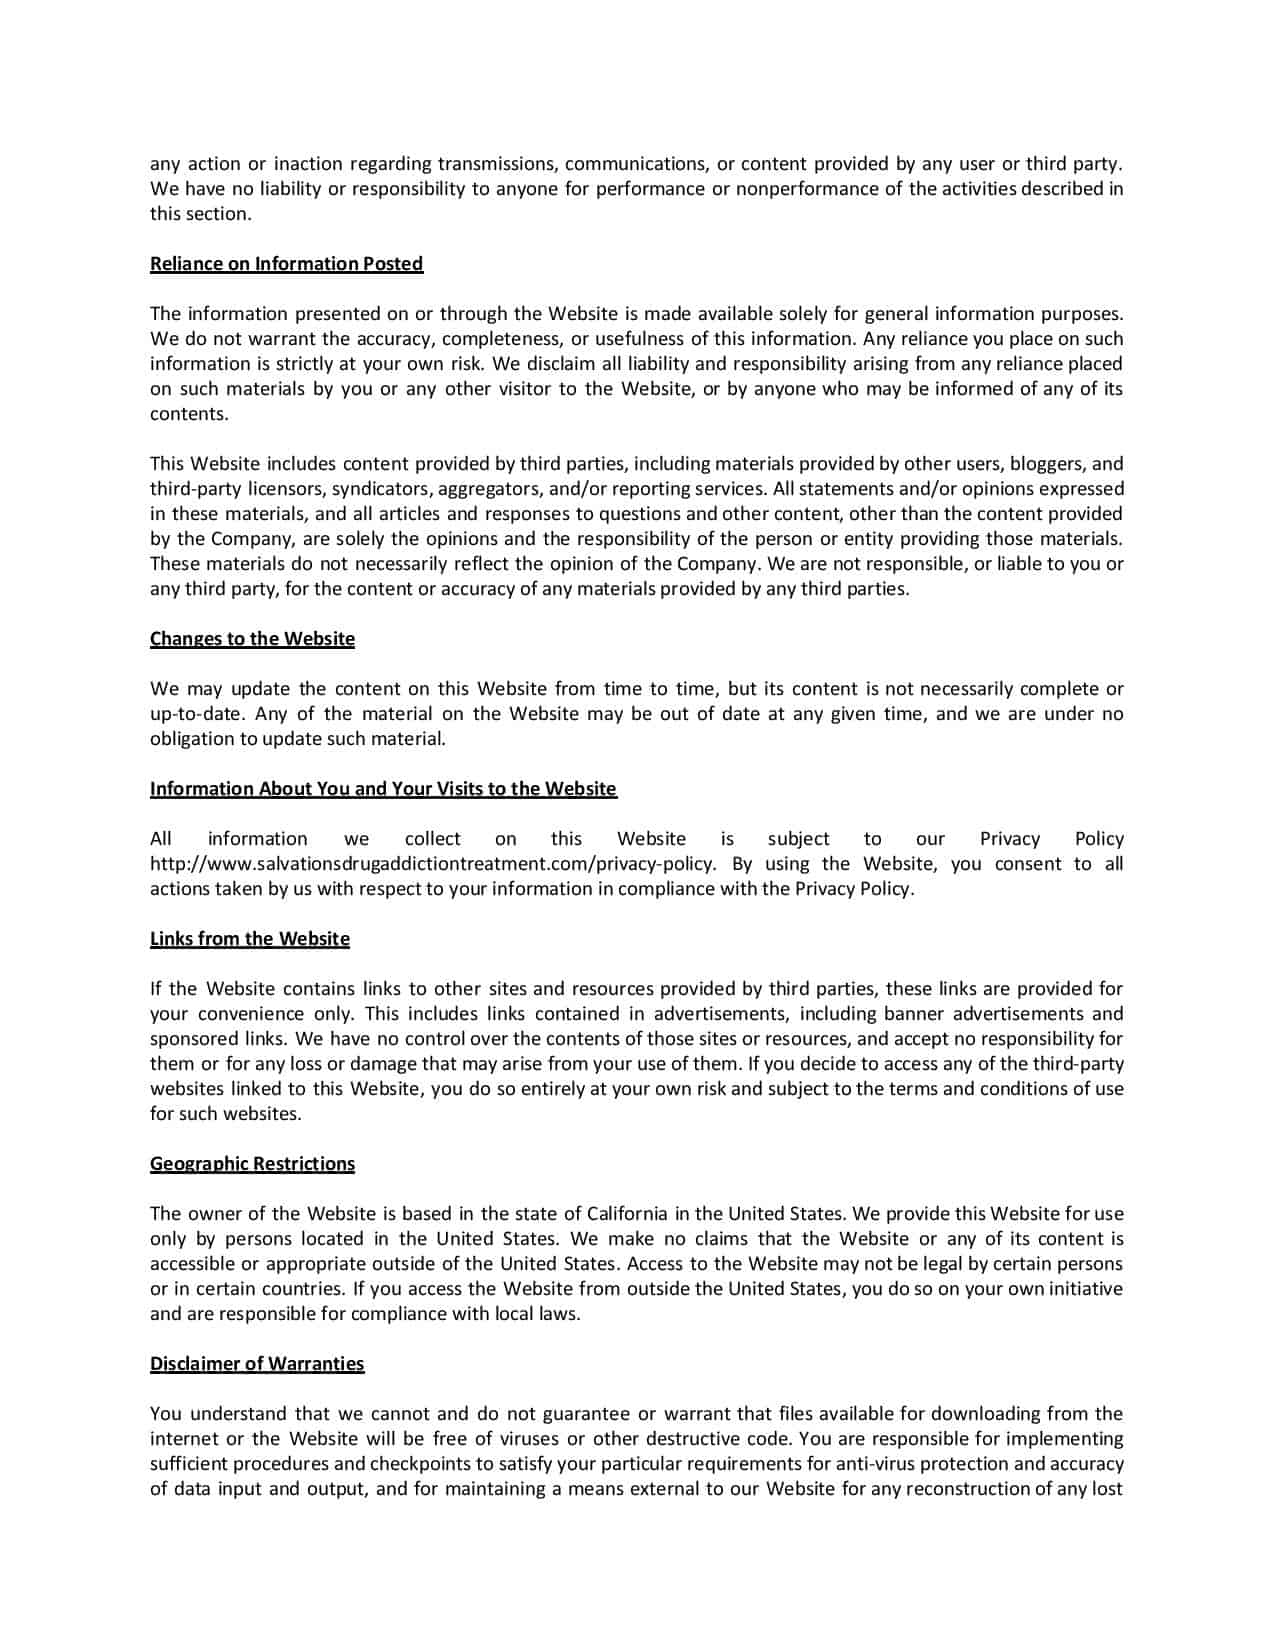 salvationsdrugaddictiontreatment Terms of Use-page-004